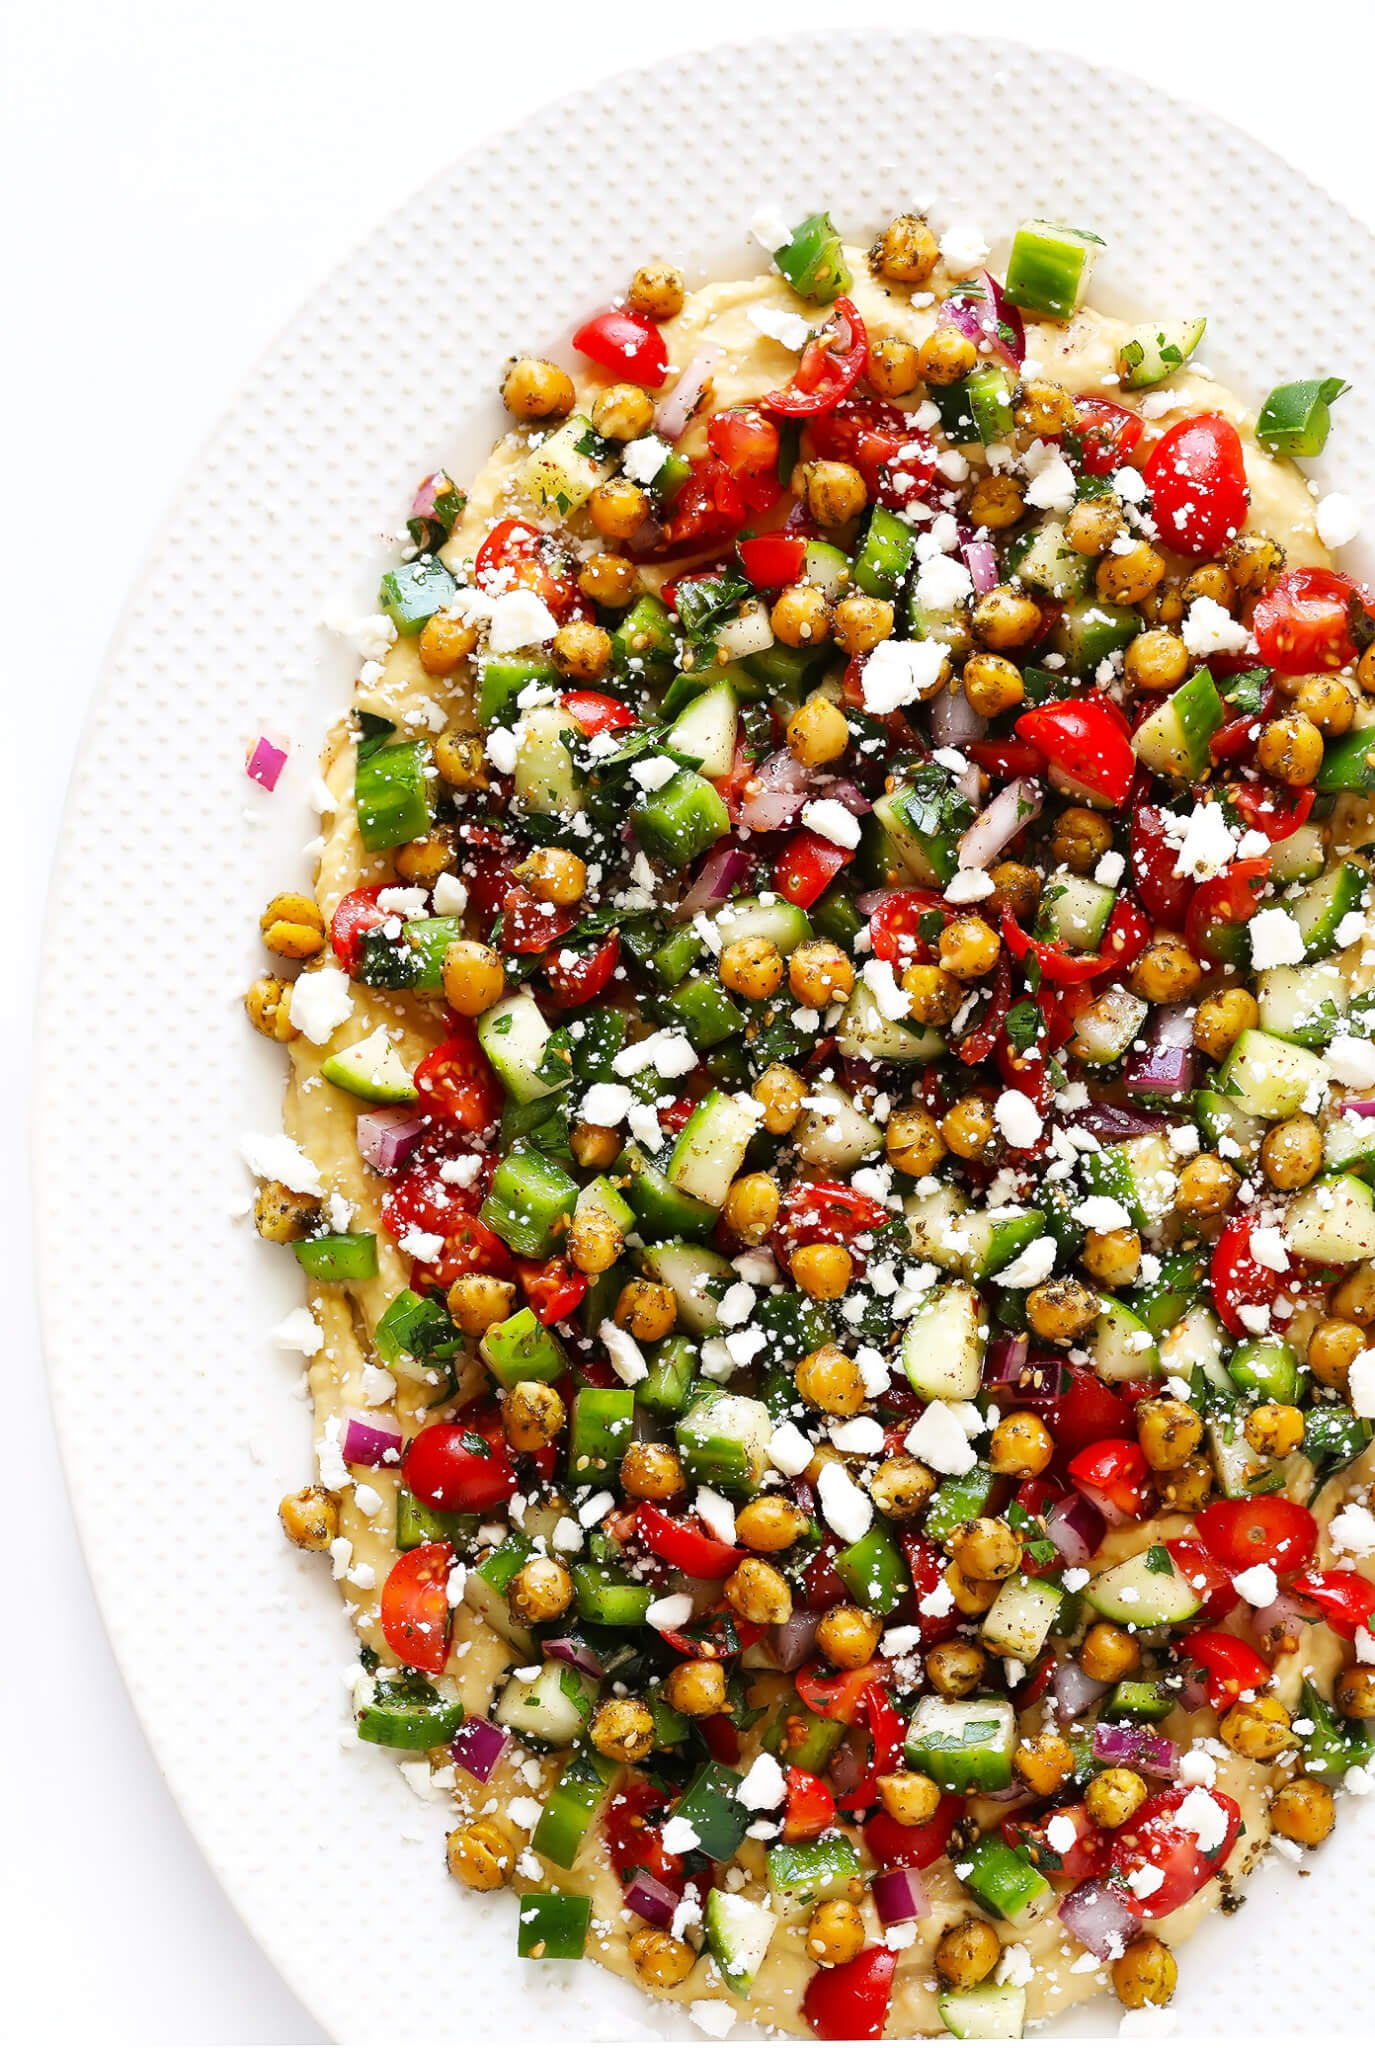 This delicious Israeli Salad recipe is quick and easy to make, full of the fresh flavors of tomatoes, cucumbers, peppers, mint, parsley and sumac, and it's so delicious! Serve it up on its own, or use it to make a simple pita wrap or hummus dip! | gimmesomeoven.com